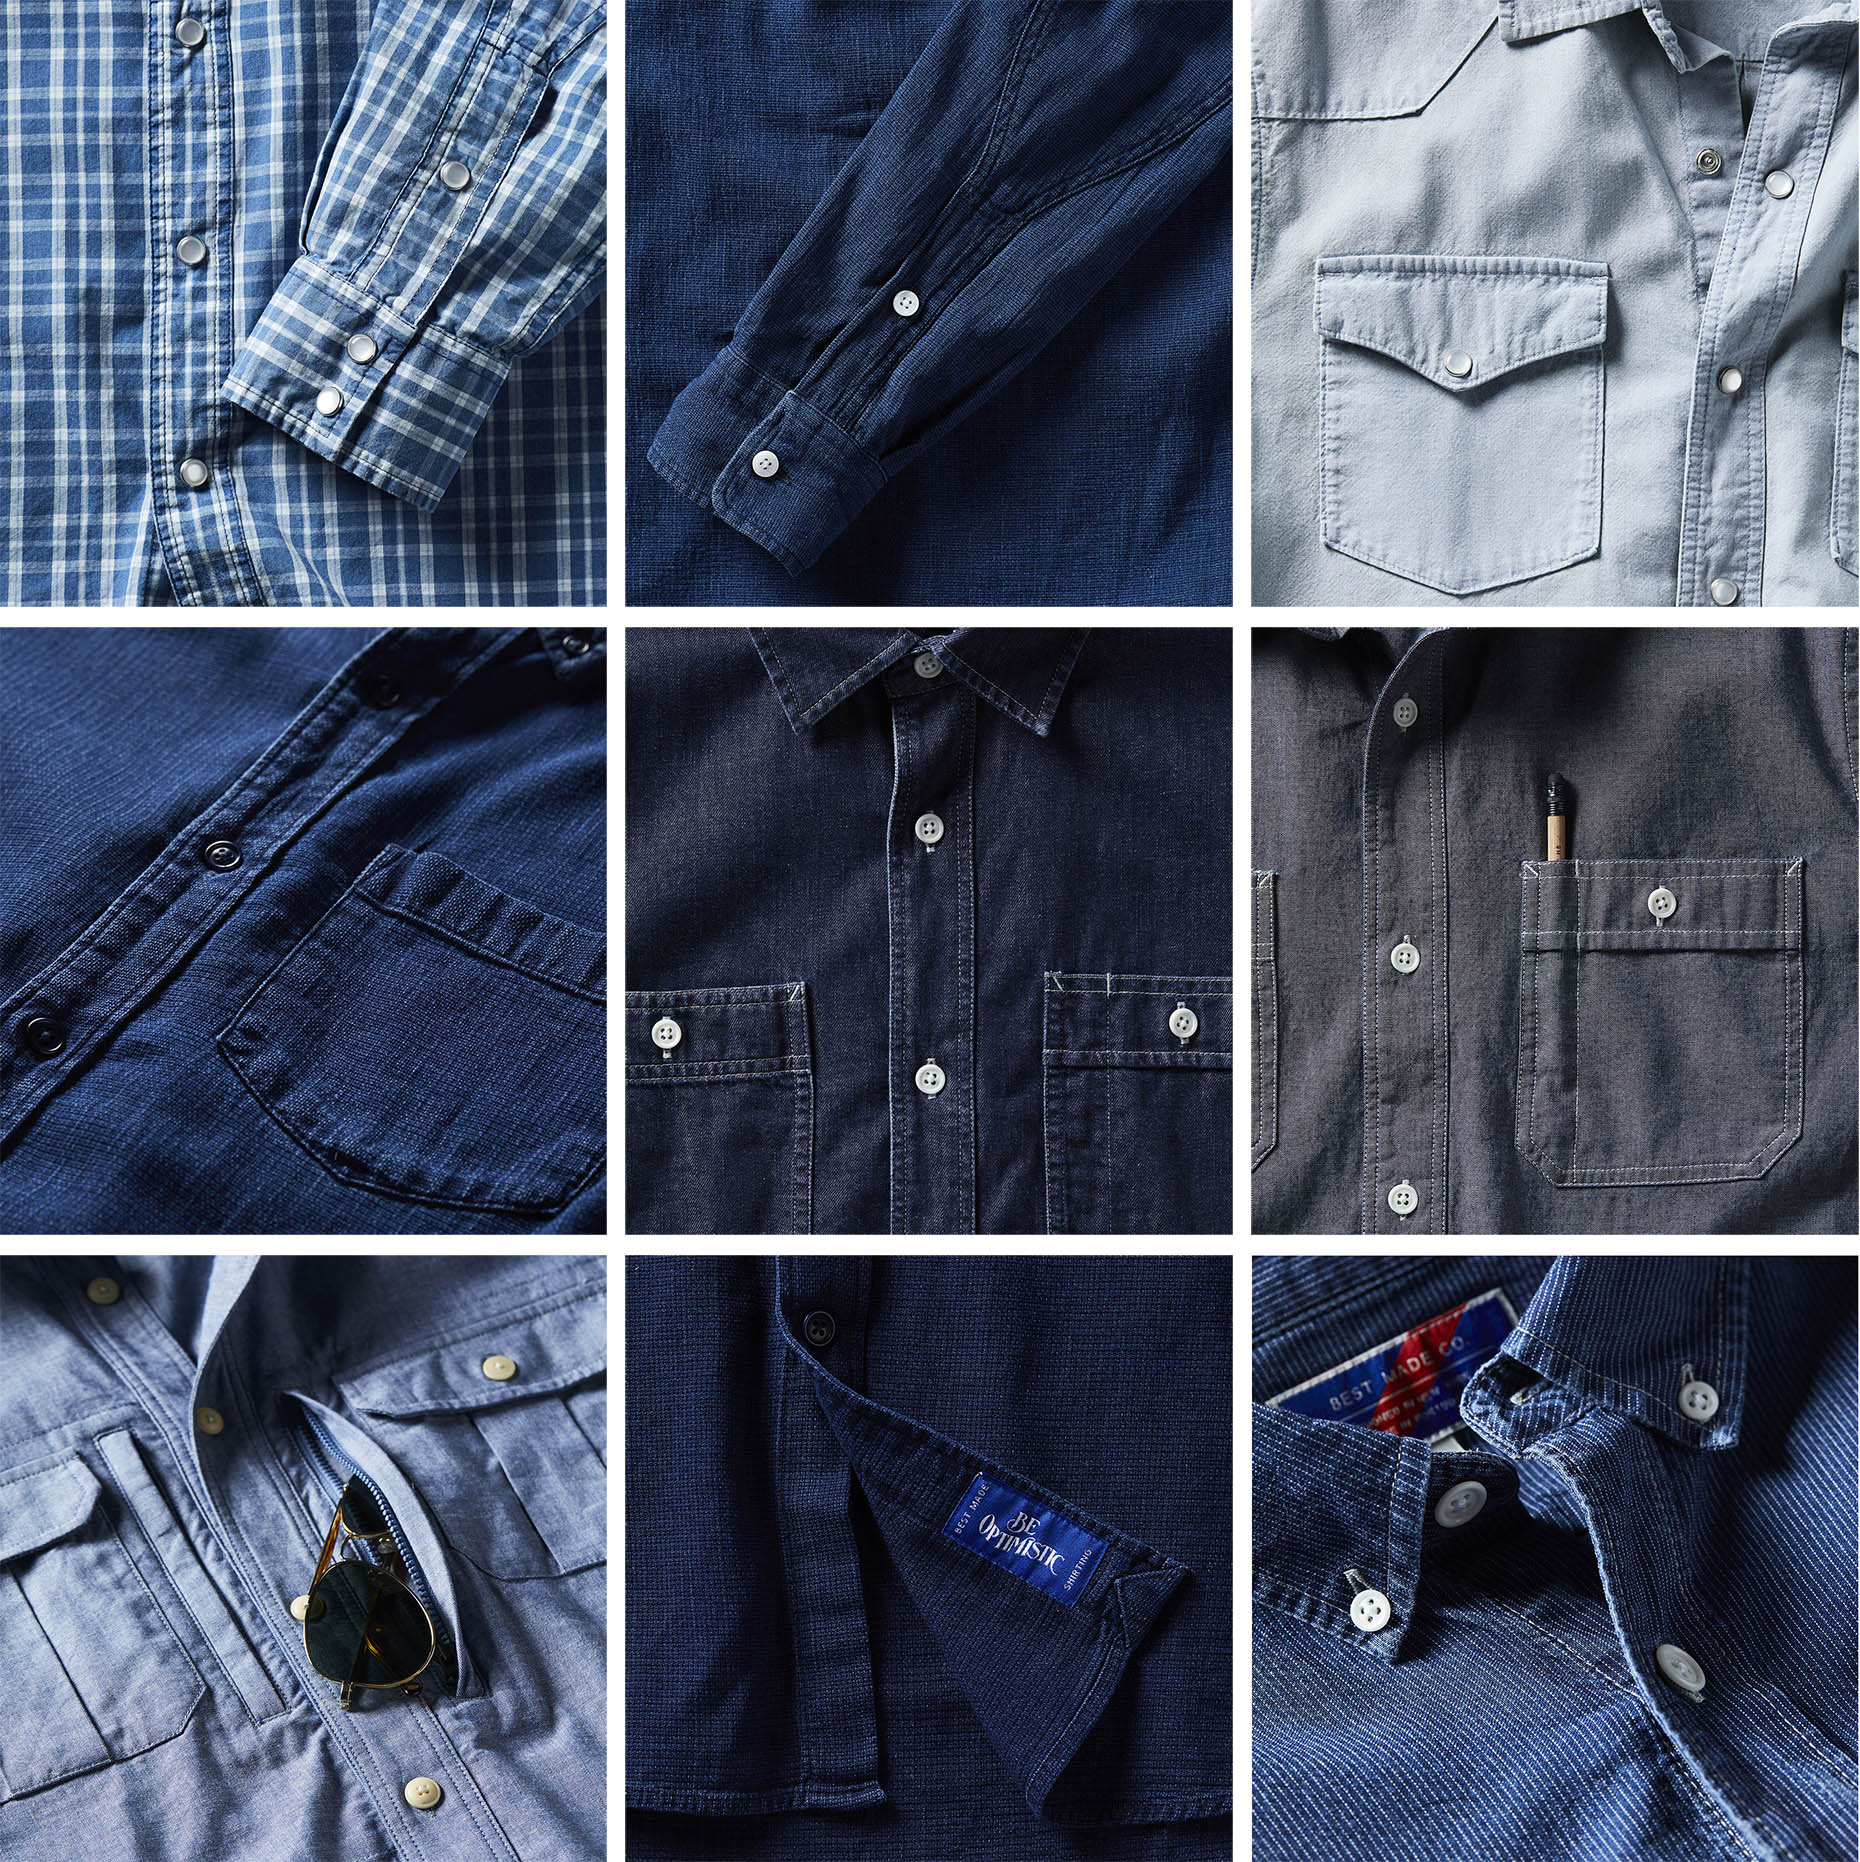 BMC_SHIRTING_DETAILS